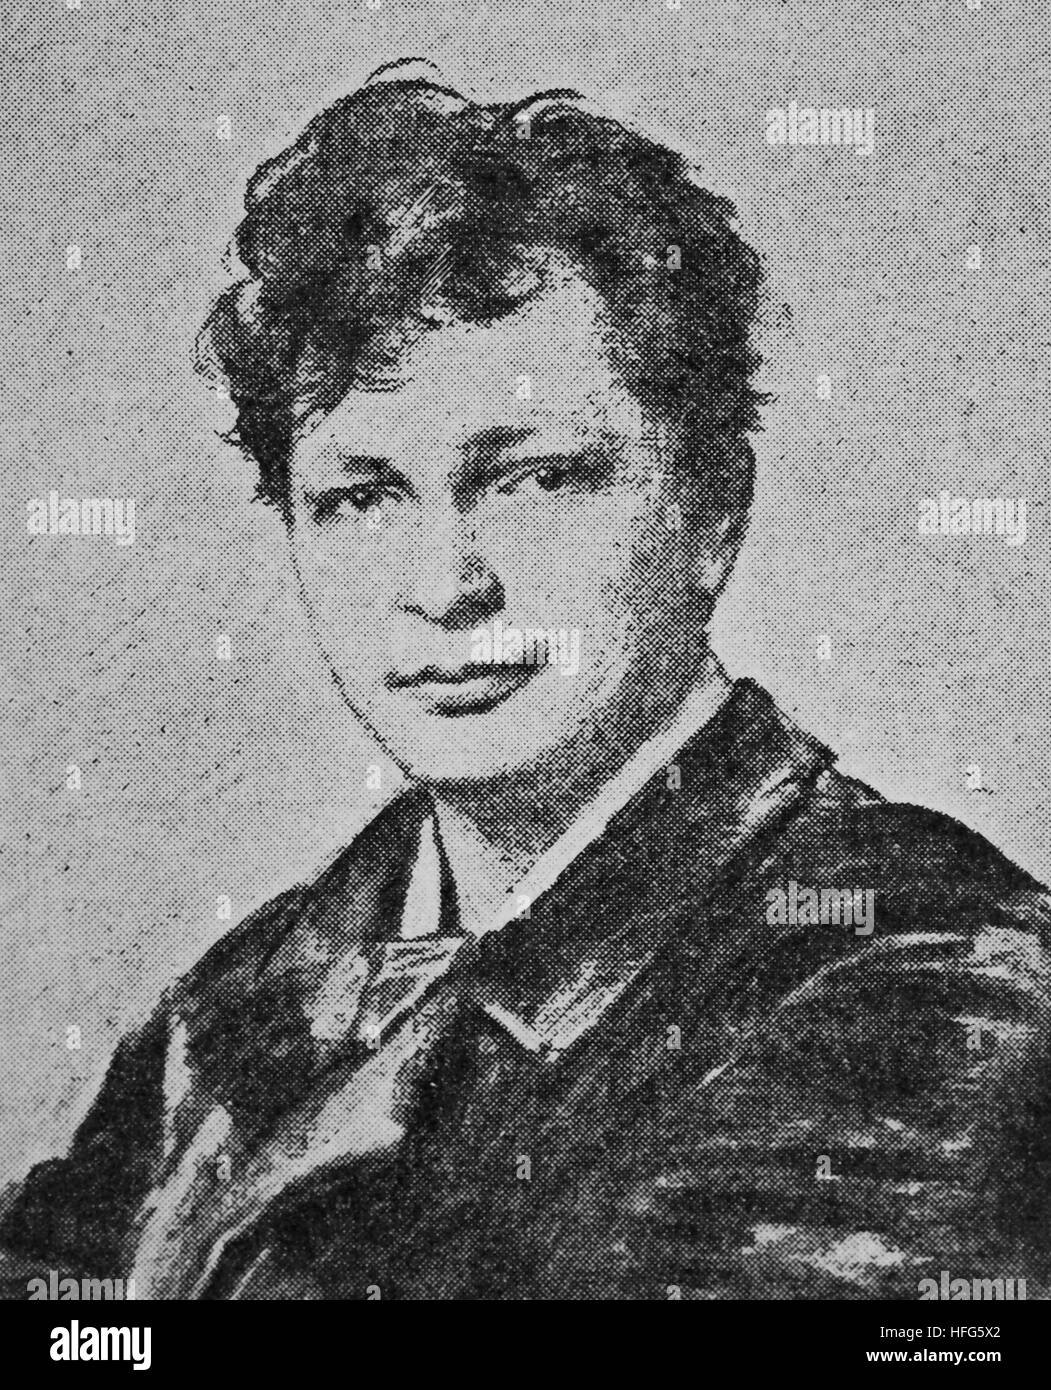 Karl Scheidemantel, 1859 - 1923, was a baritone singer, and later an opera director., reproduction photo from the - Stock Image